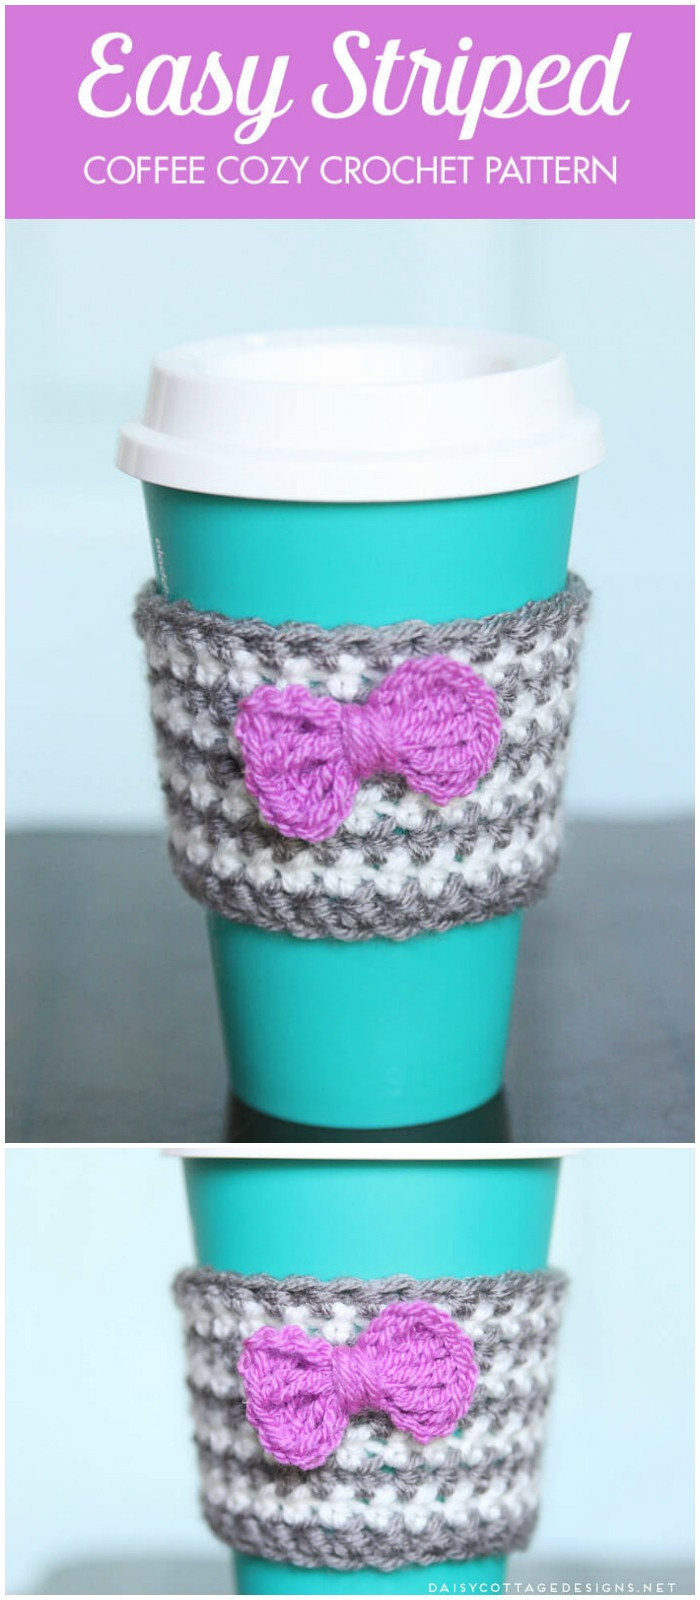 Crochet Coffee Cup Cozy Fresh 8 Crochet Cozy Patterns Free Crochet Patterns • Diy Home Of Crochet Coffee Cup Cozy Inspirational Crochet Class Beginning Crochet Sparkleez Crystles